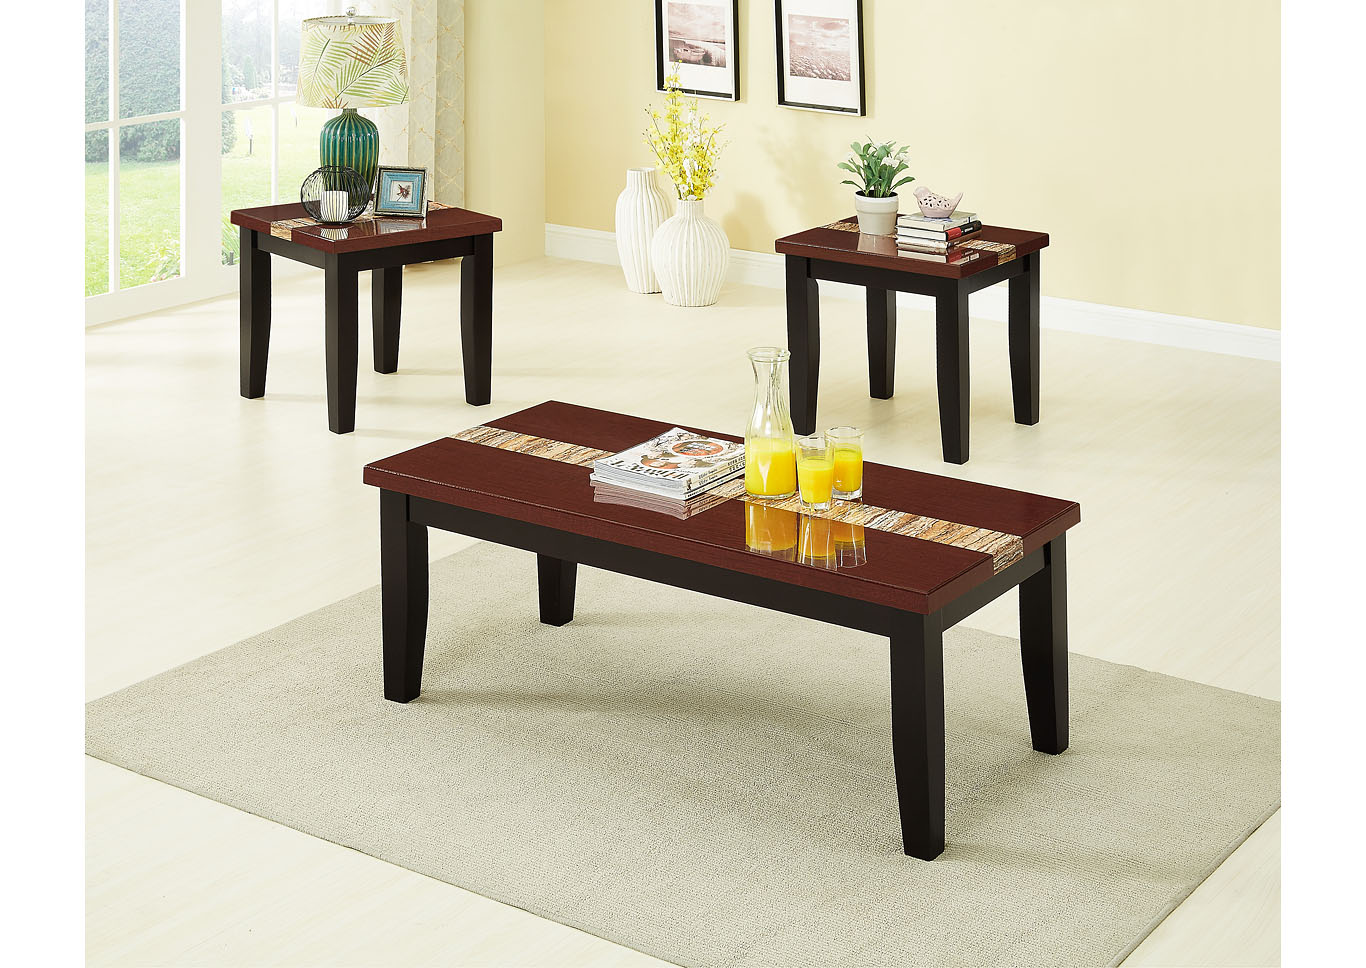 Brown 3 Piece Faux Marble Top Coffee & End Table Set,Global Trading